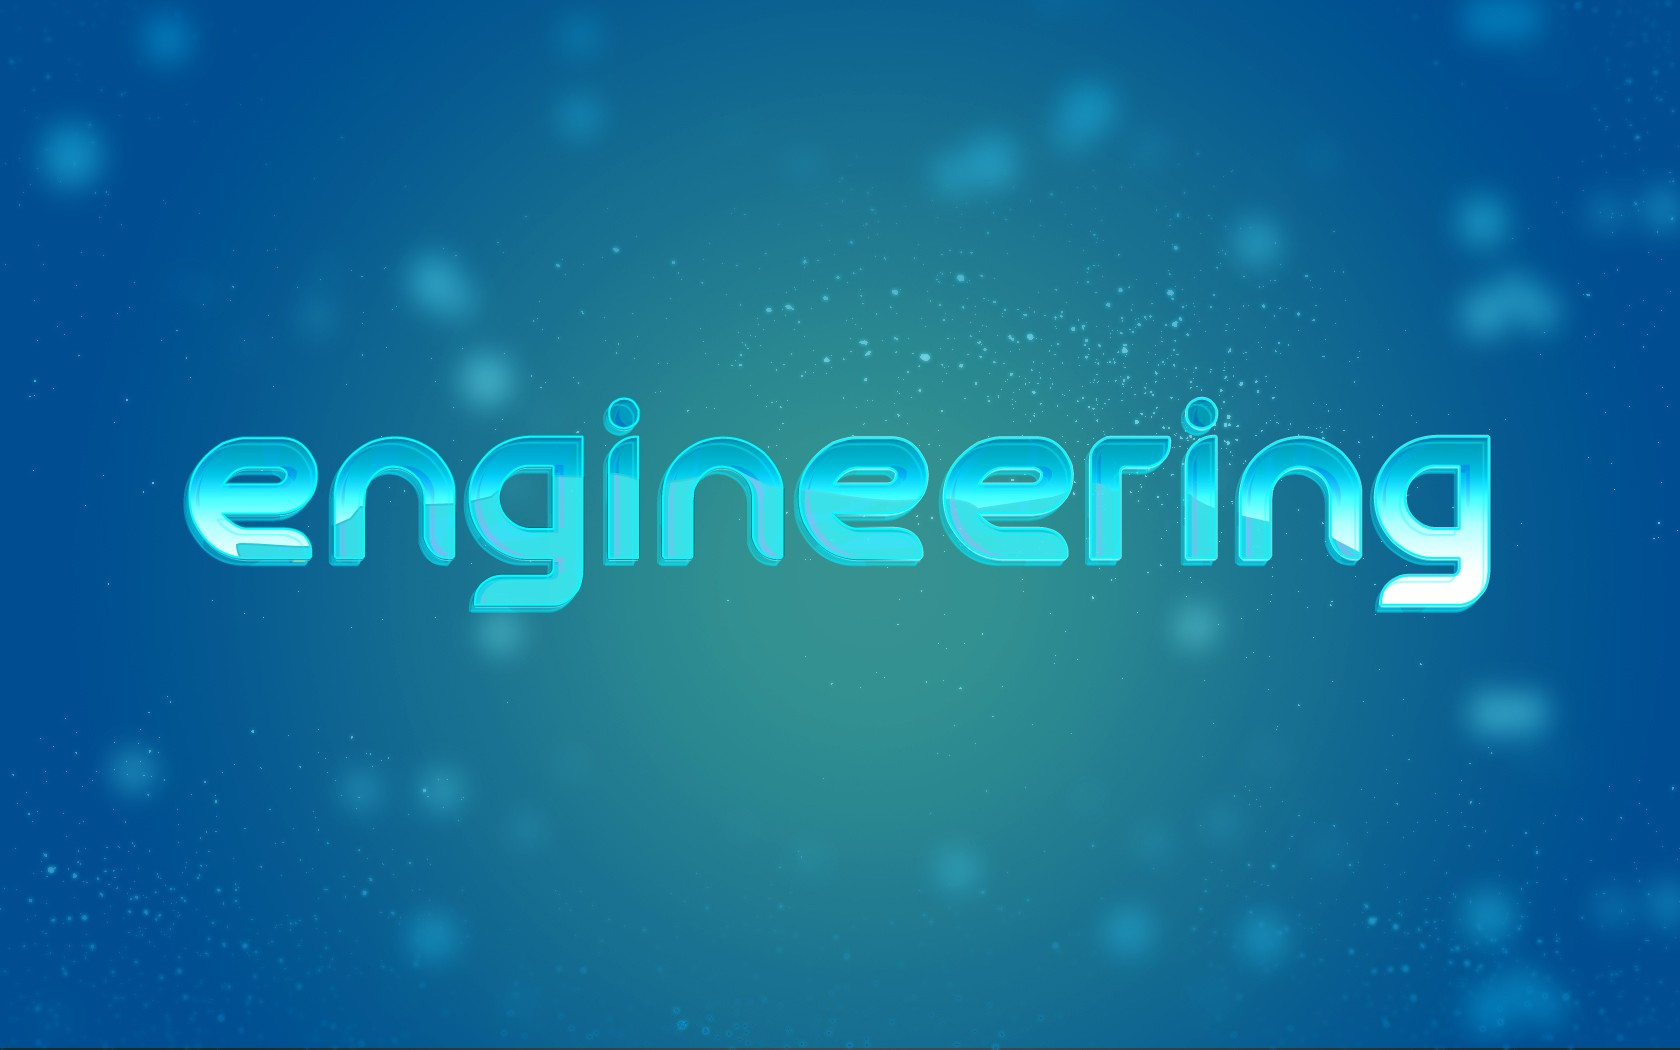 Mechanical Engineering Wallpapers HD - WallpaperSafari